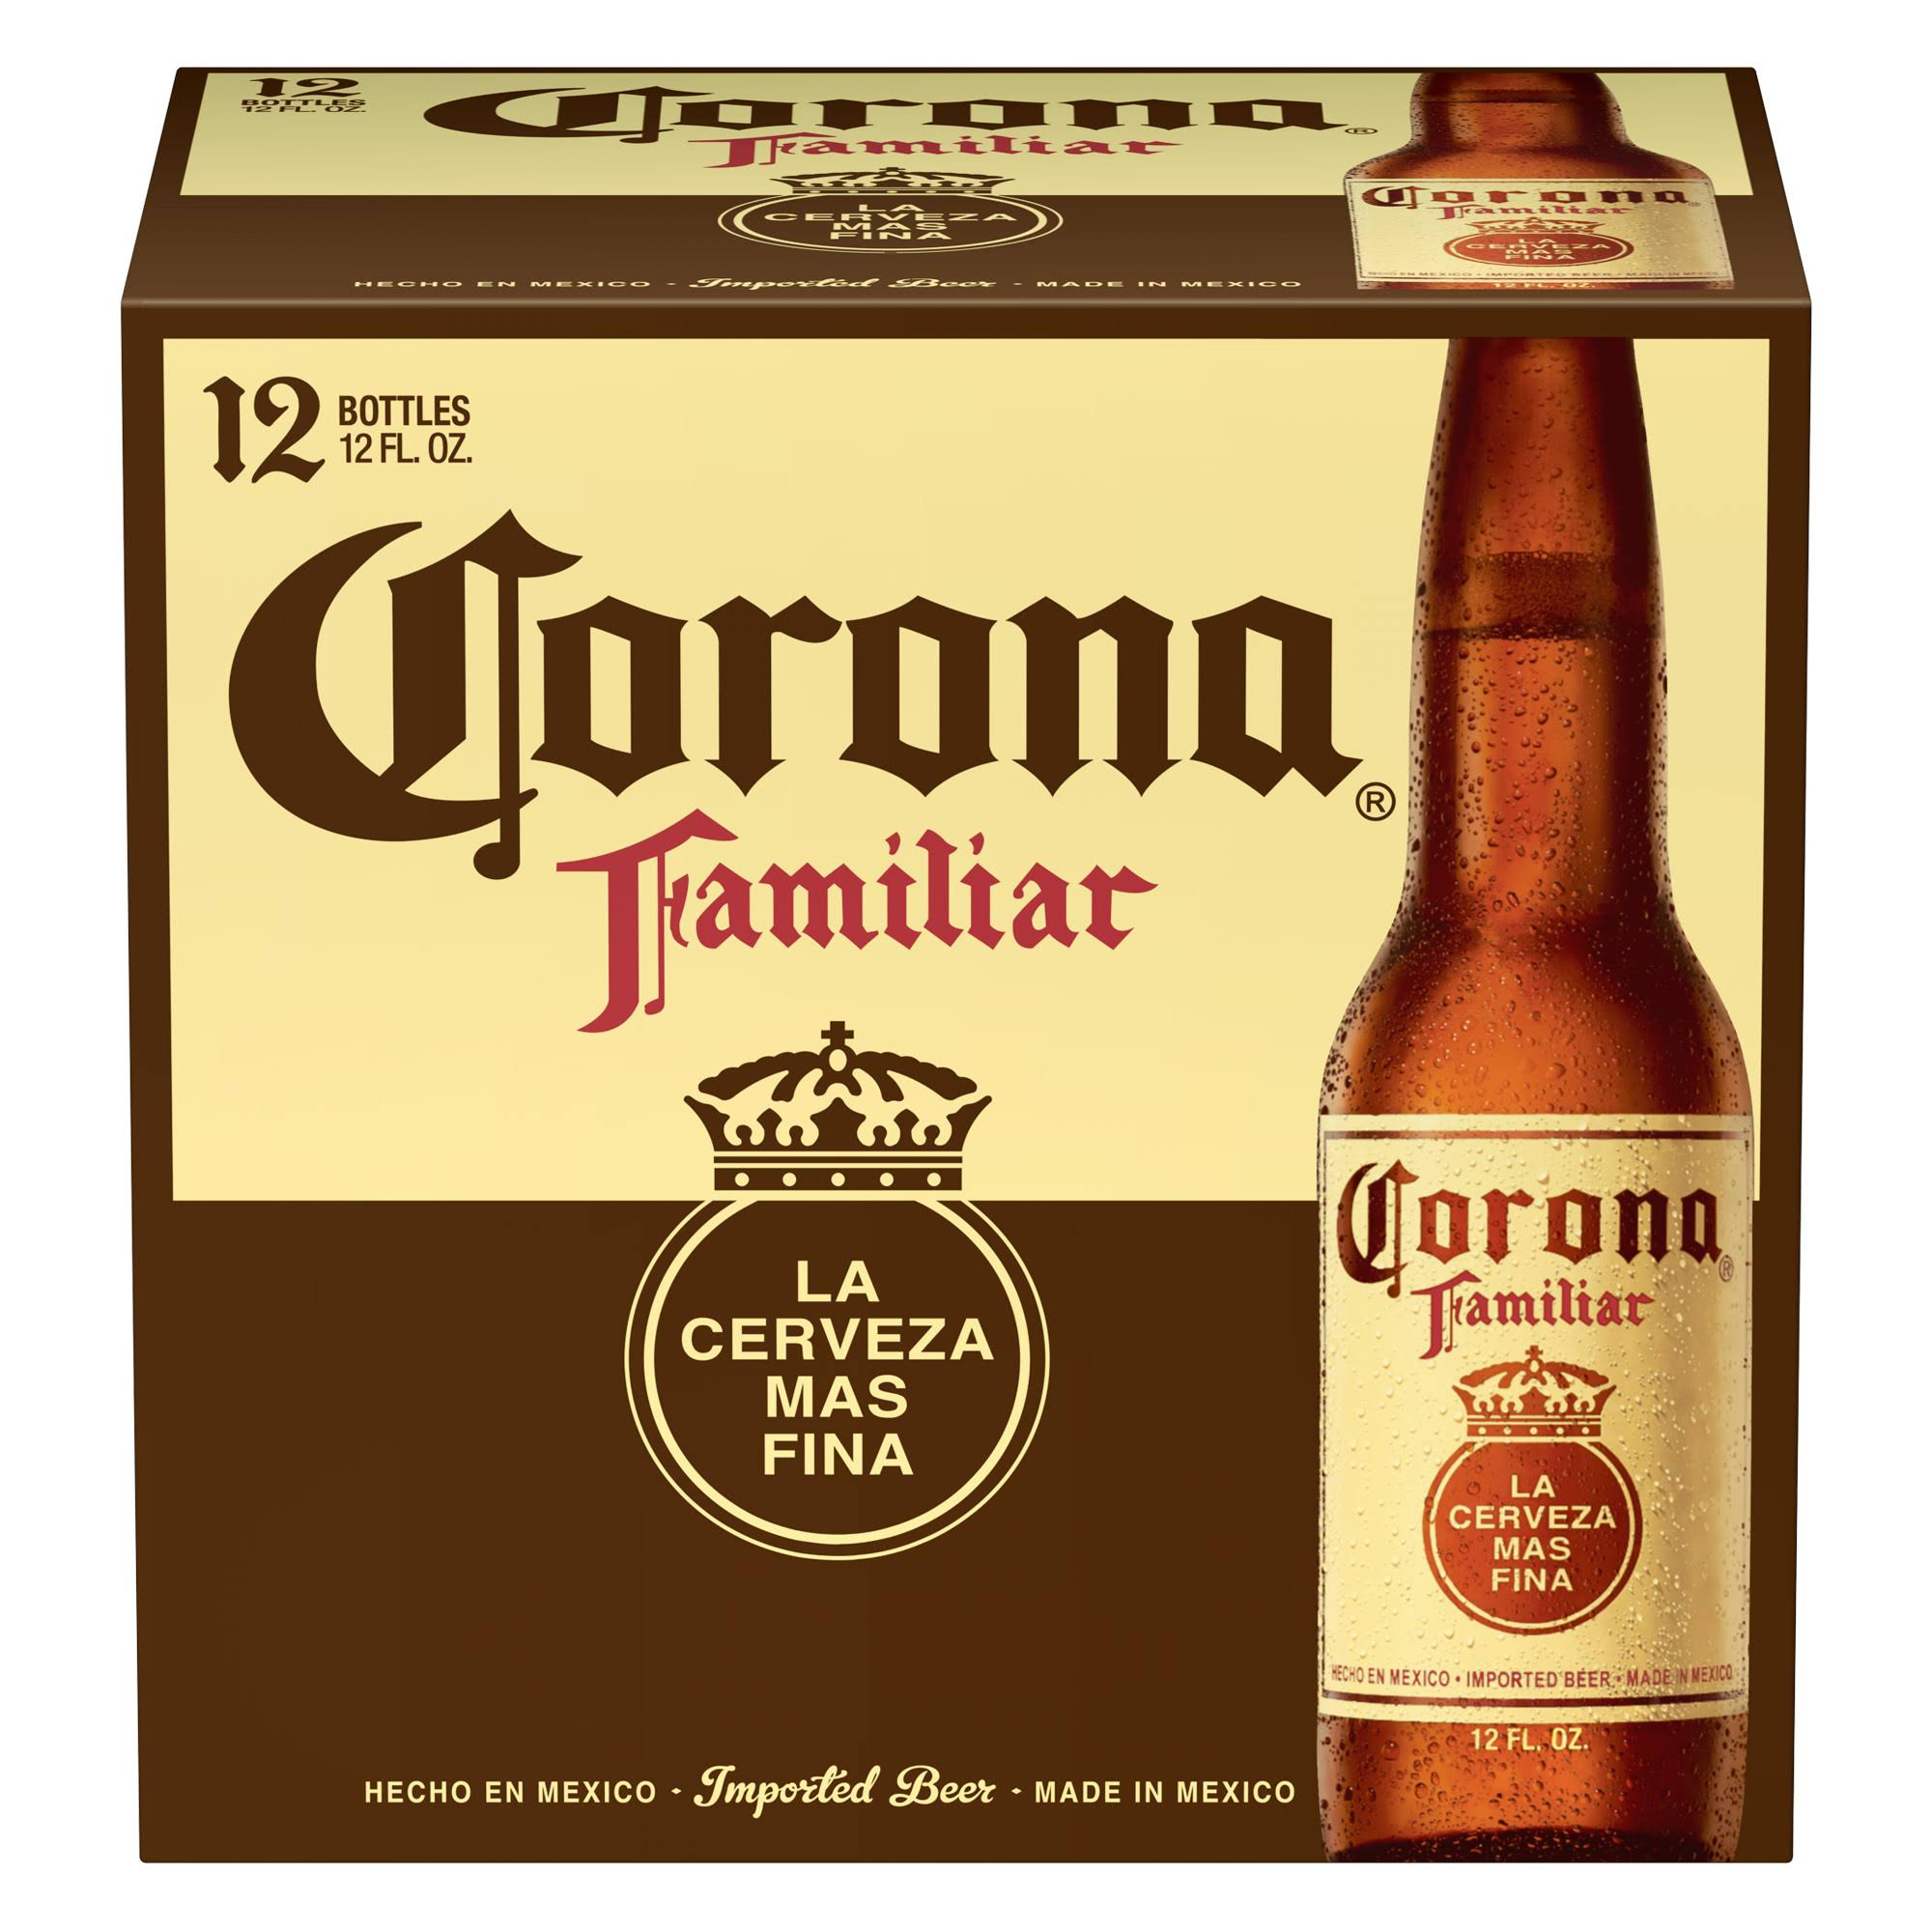 Corona Familiar Premier Beer - 12oz, 12 Bottles